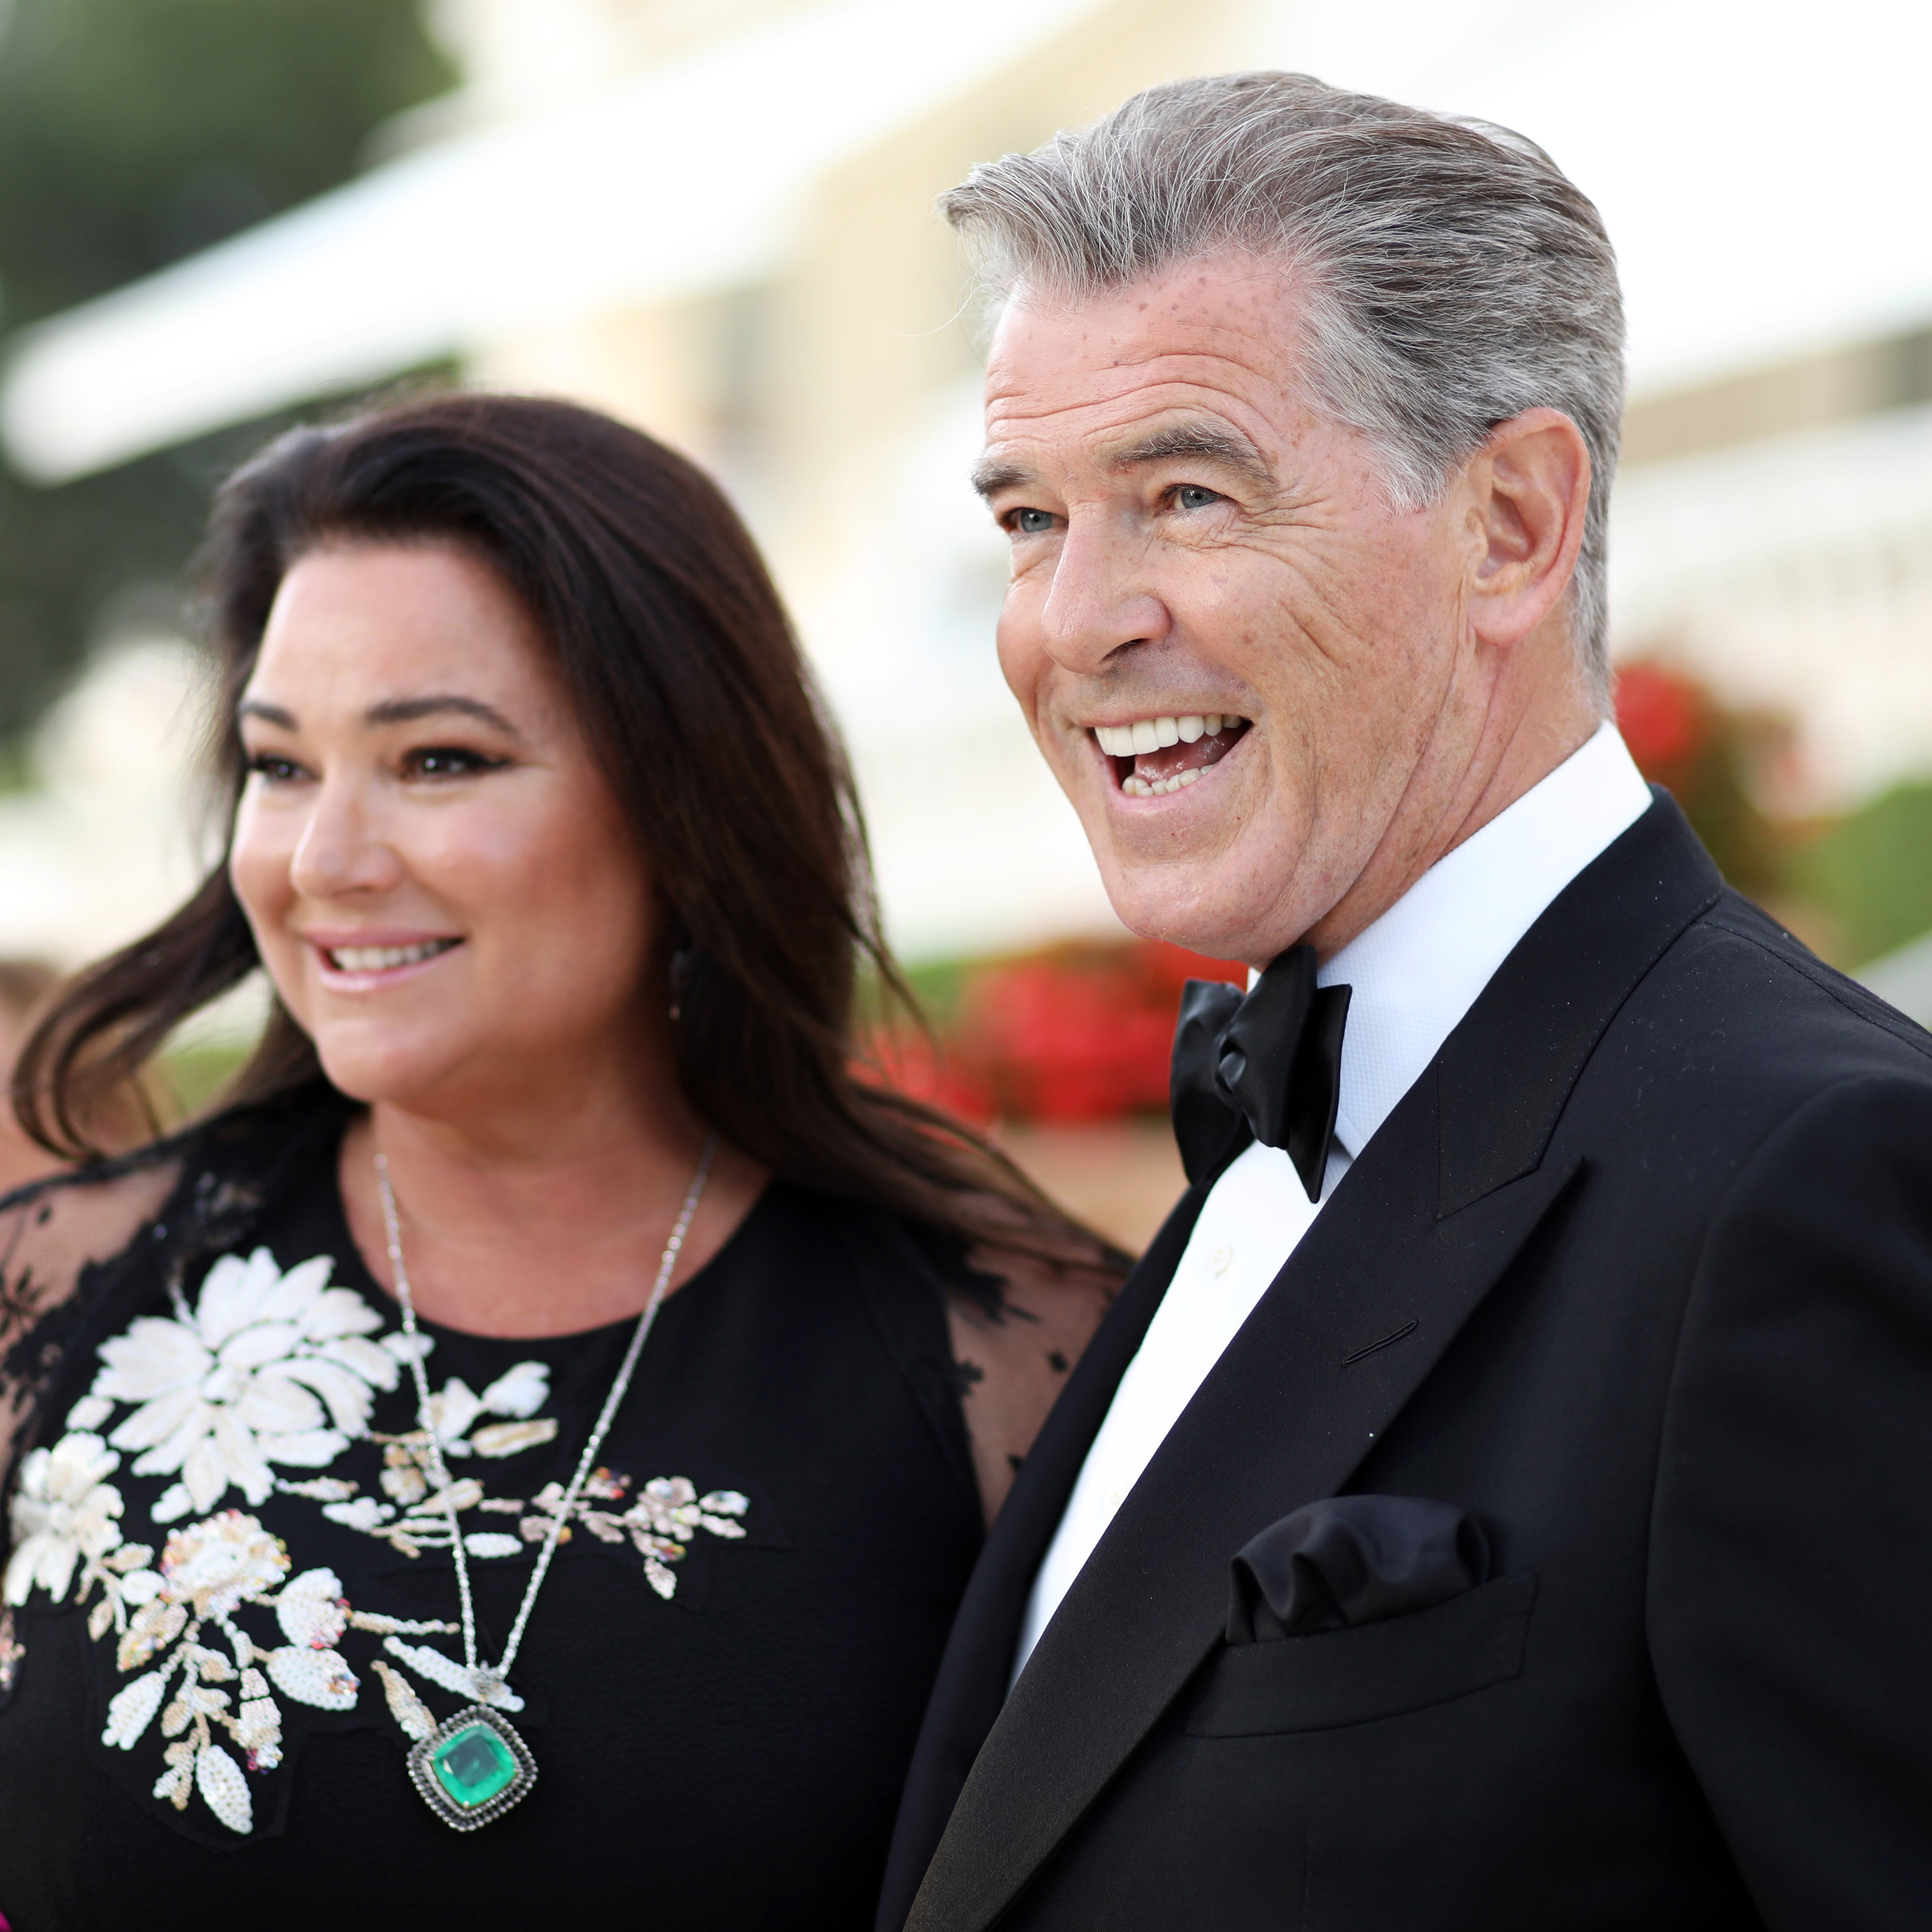 Pierce Brosnan and wife Keely Shaye Smith attend the cocktail at the amfAR Gala Cannes 2018 | Source: Getty Images